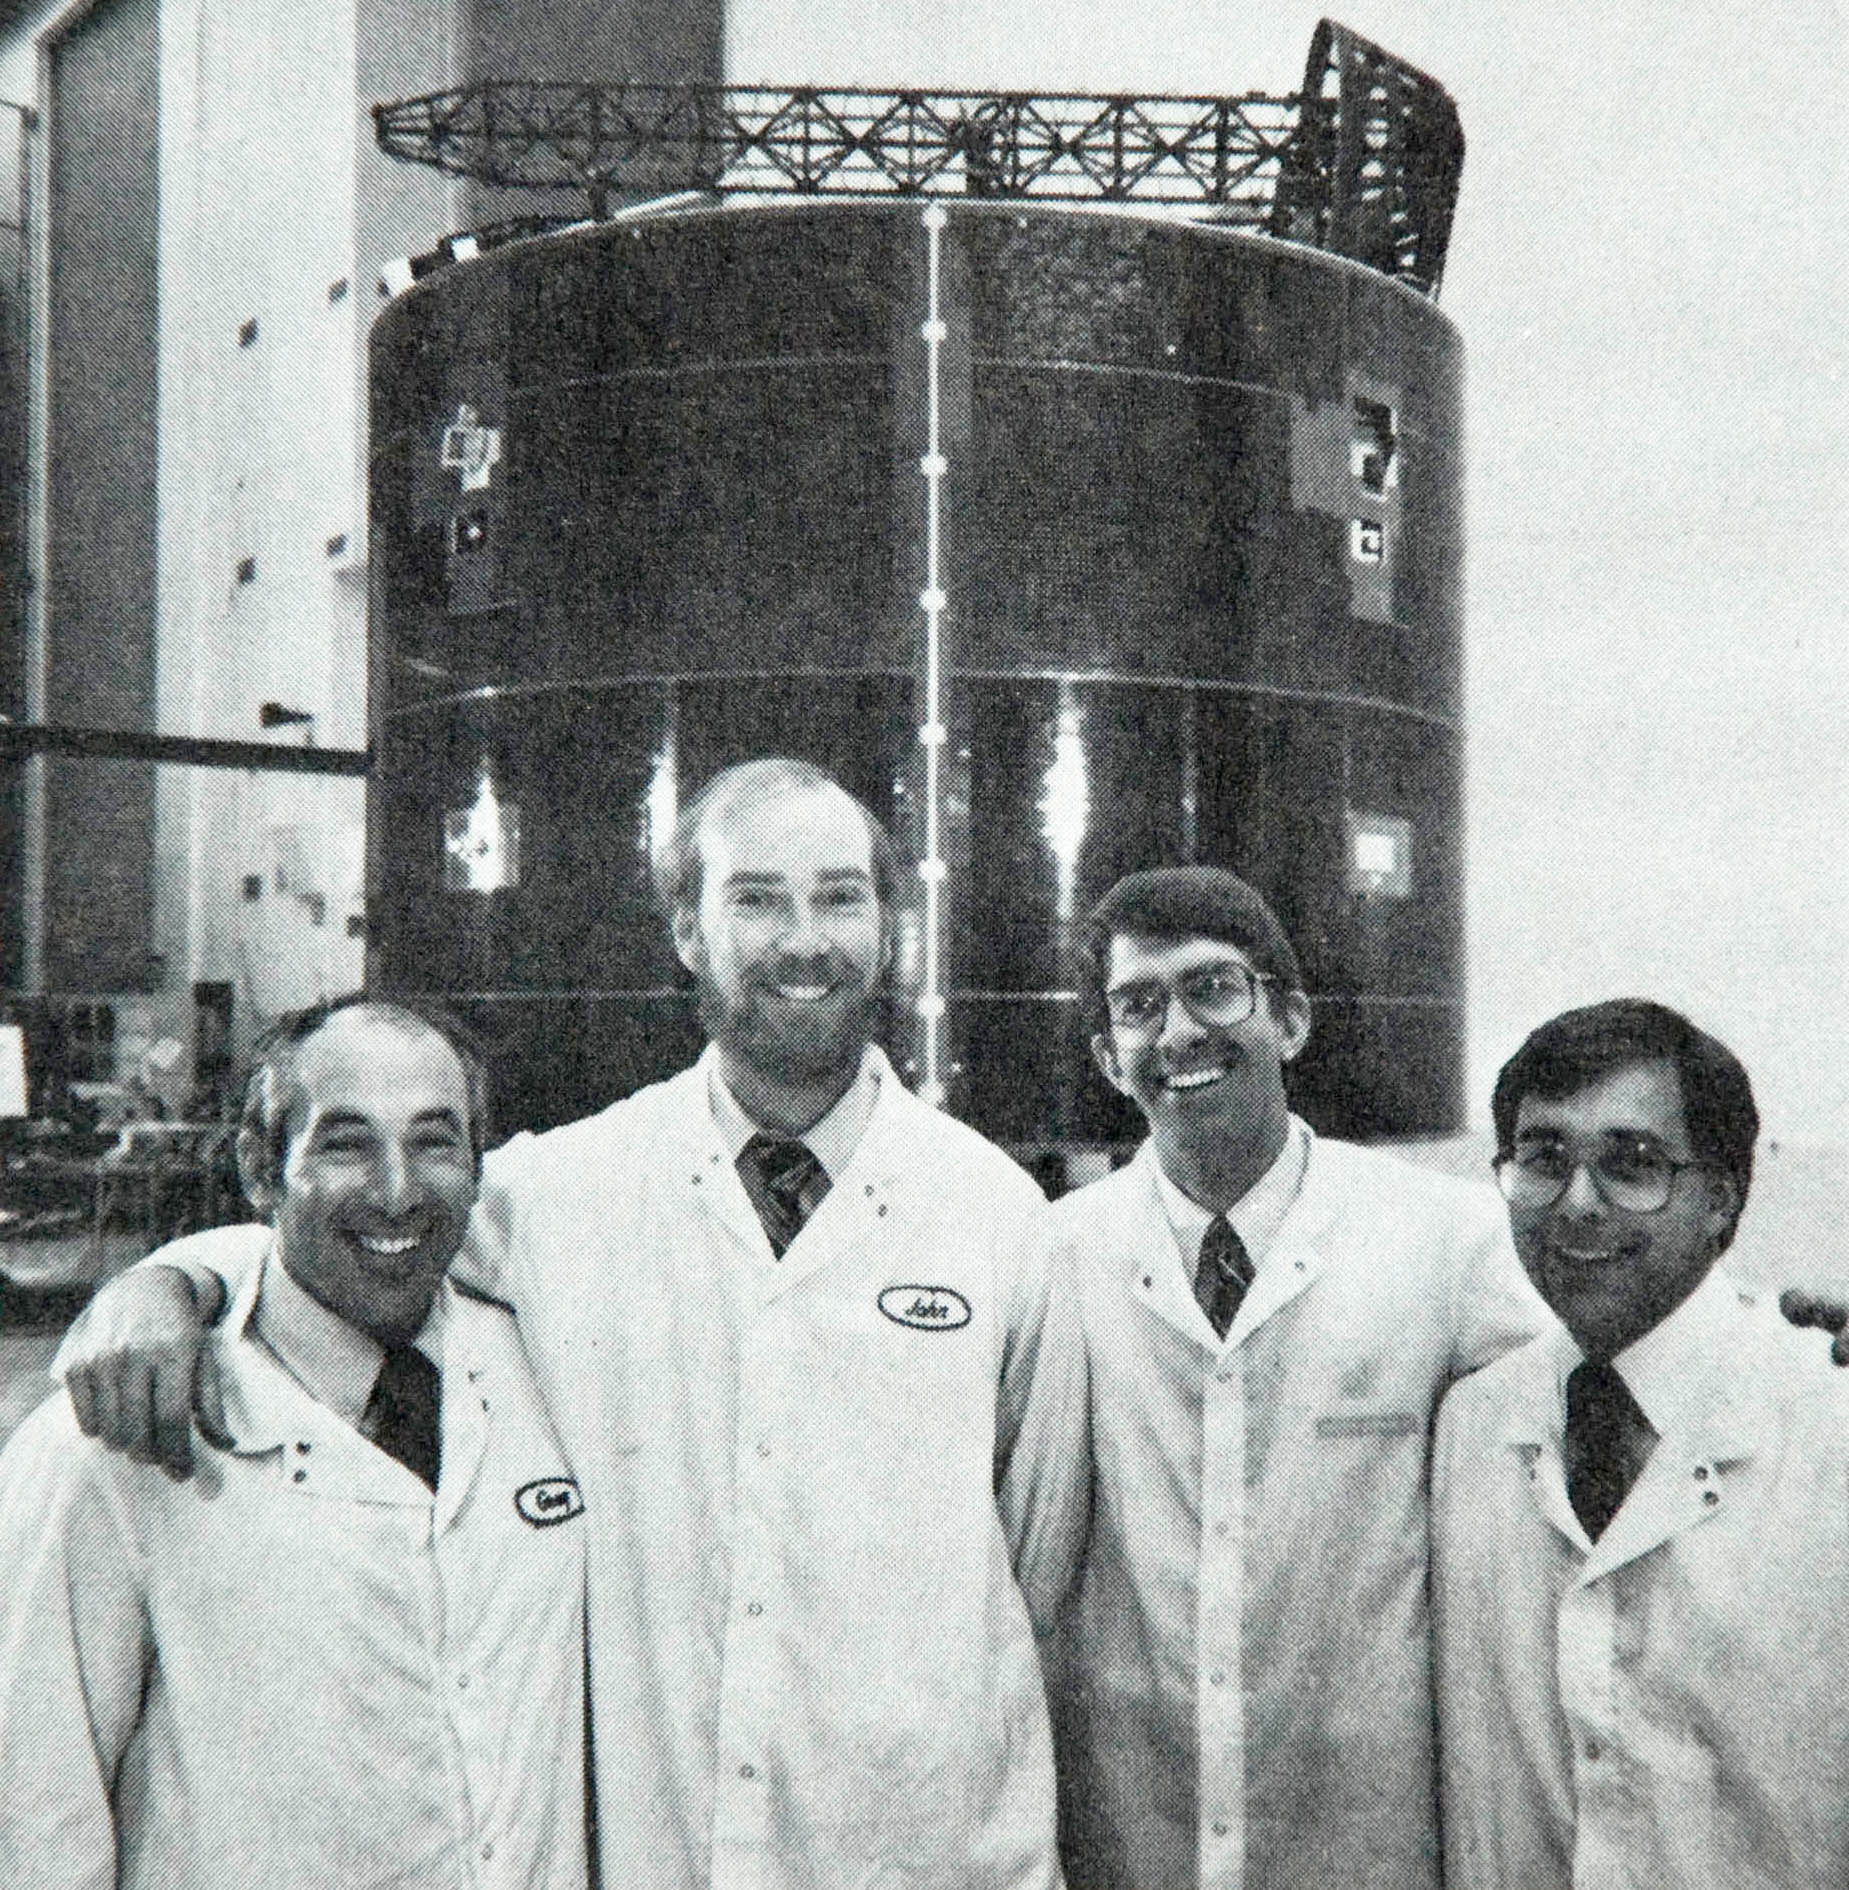 Payload Specialists Greg Jarvis, John Konrad, Stephen Cunningham, and Bill Butterworth pose in front of Leasat 3 for television cameras and the press in High Bay.